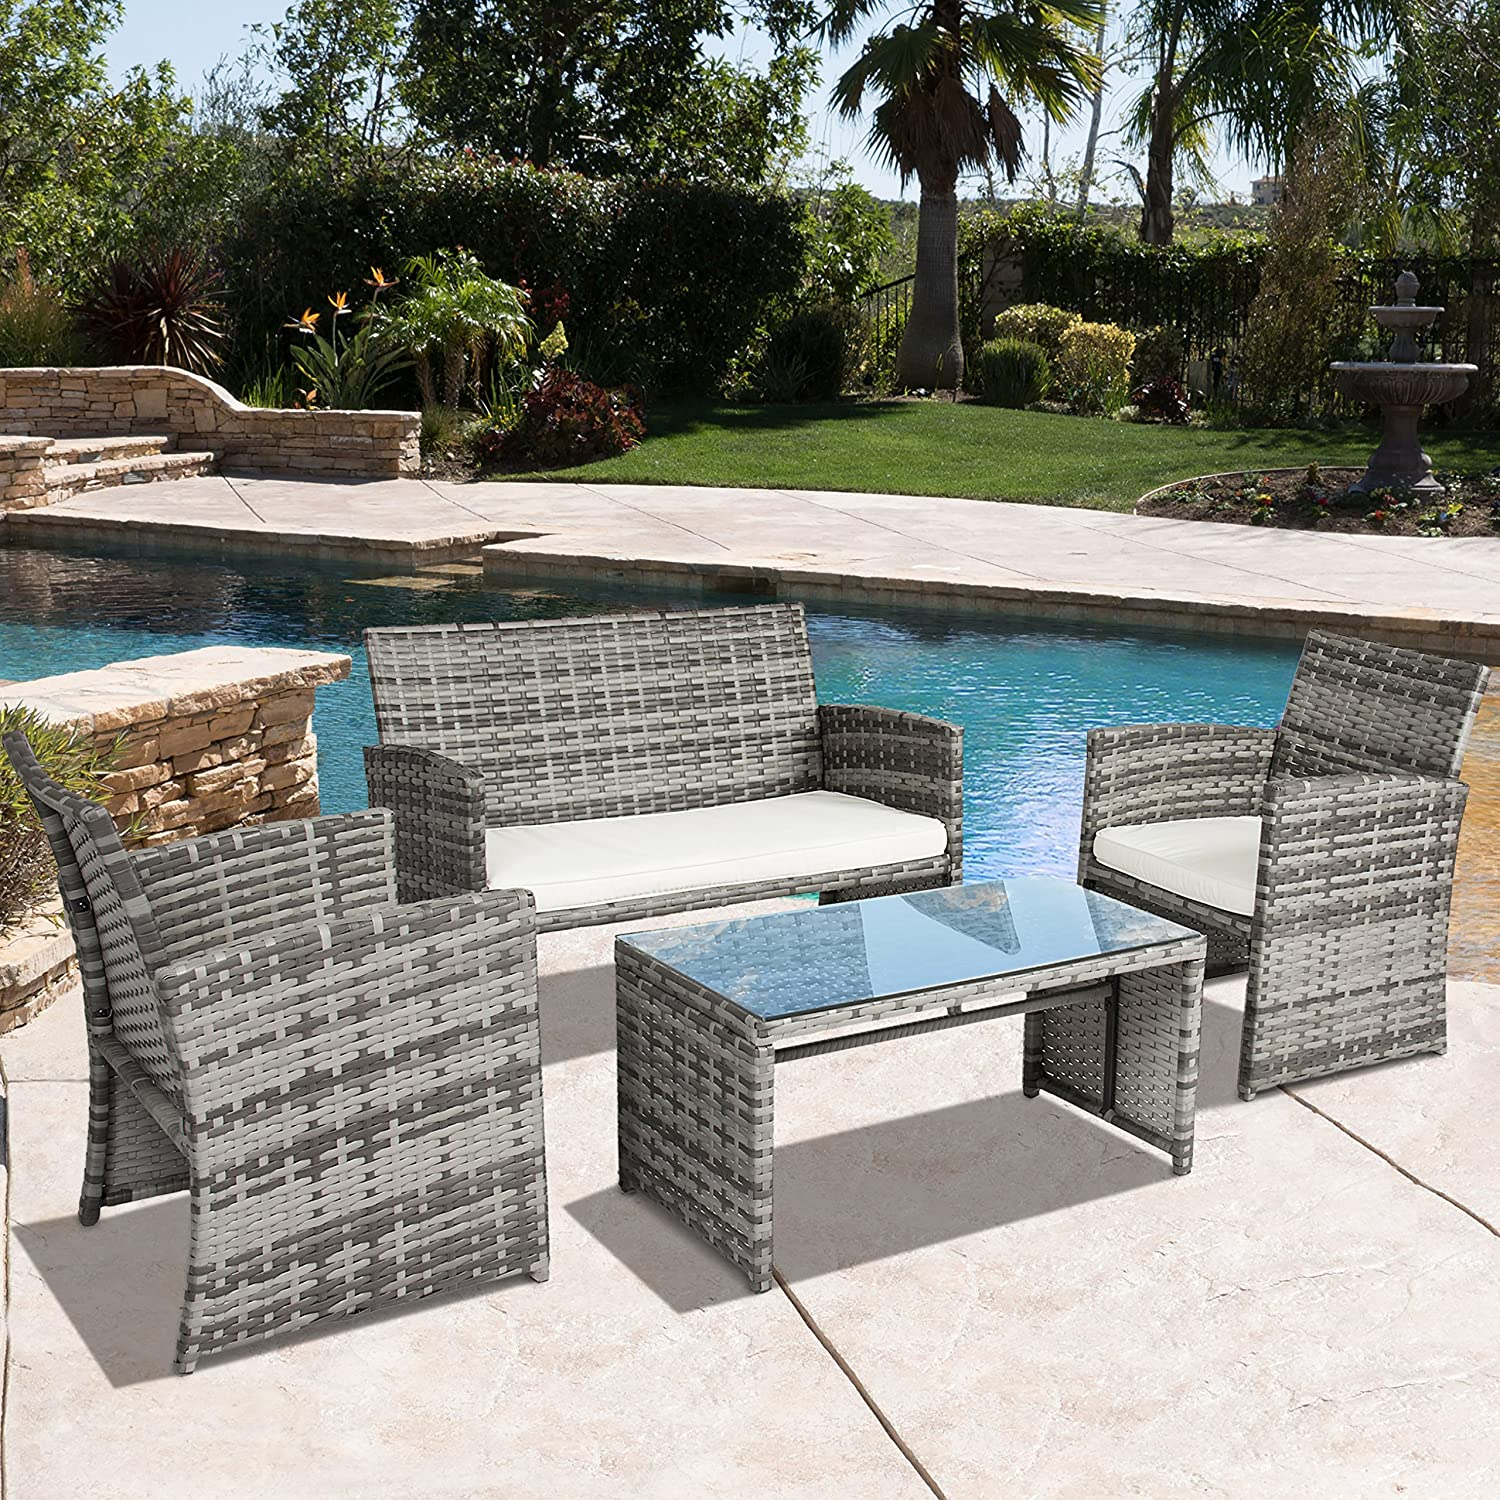 Amazon.com : Best Choice Products 4 Piece Outdoor Garden Patio Cushioned  Seat Mix Gray Wicker Sofa Furniture Set : Patio, Lawn U0026 Garden